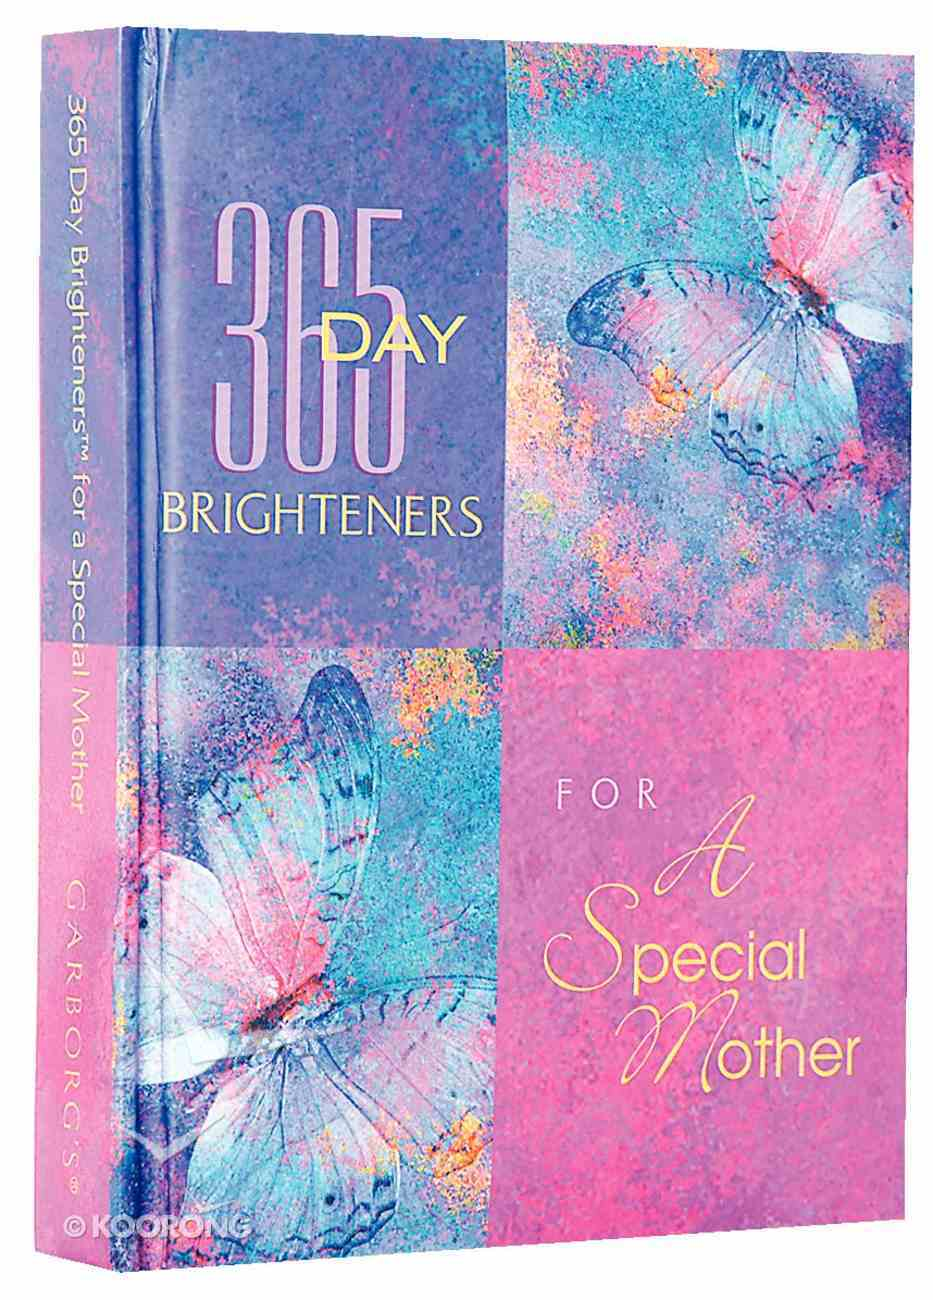 For a Special Mother (365 Day Brighteners Series) Hardback